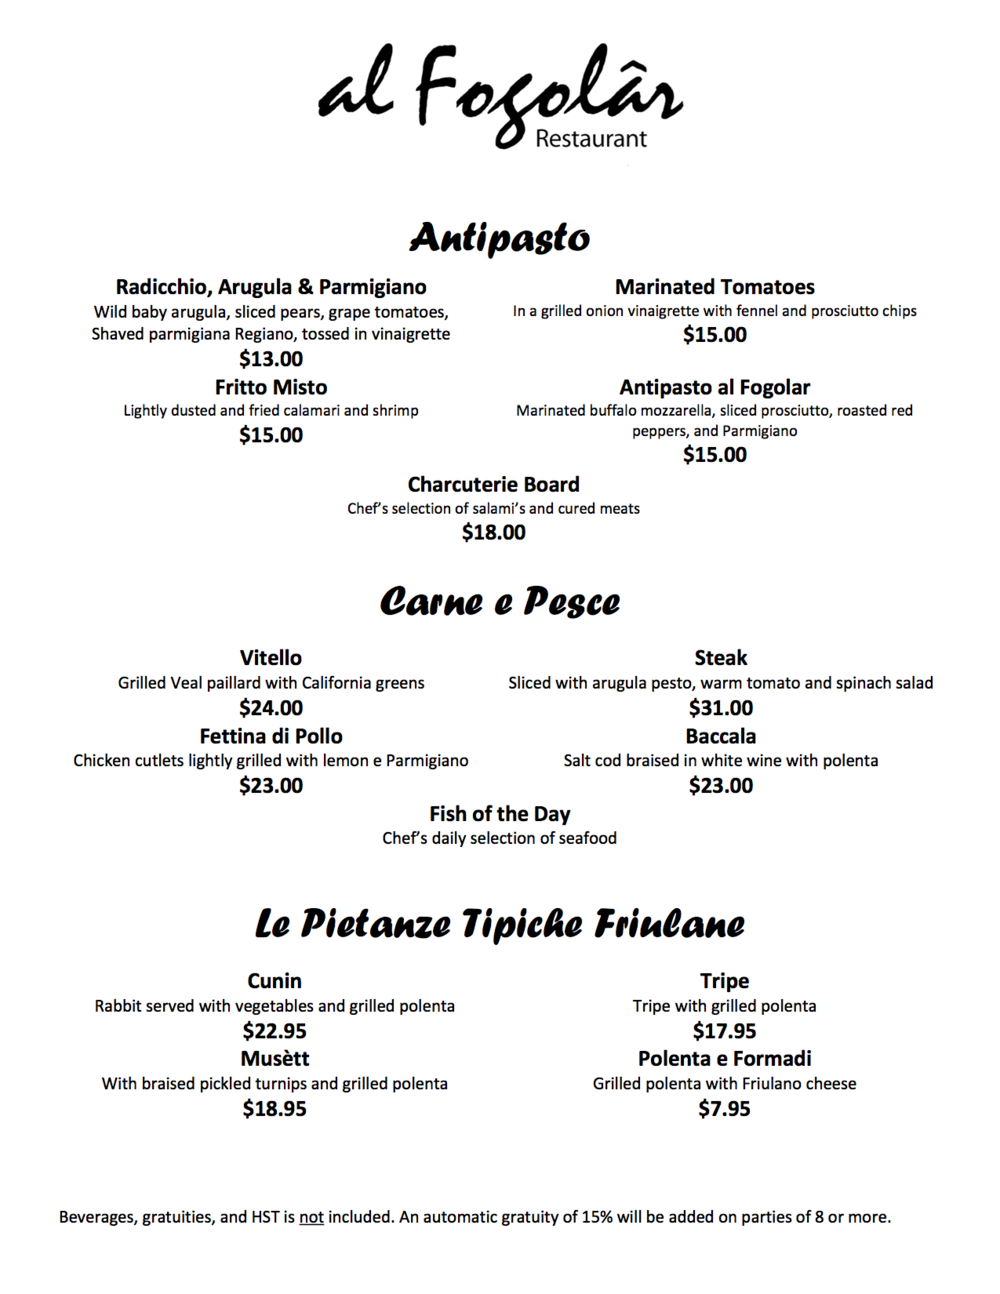 al Fogolar Regular Menu